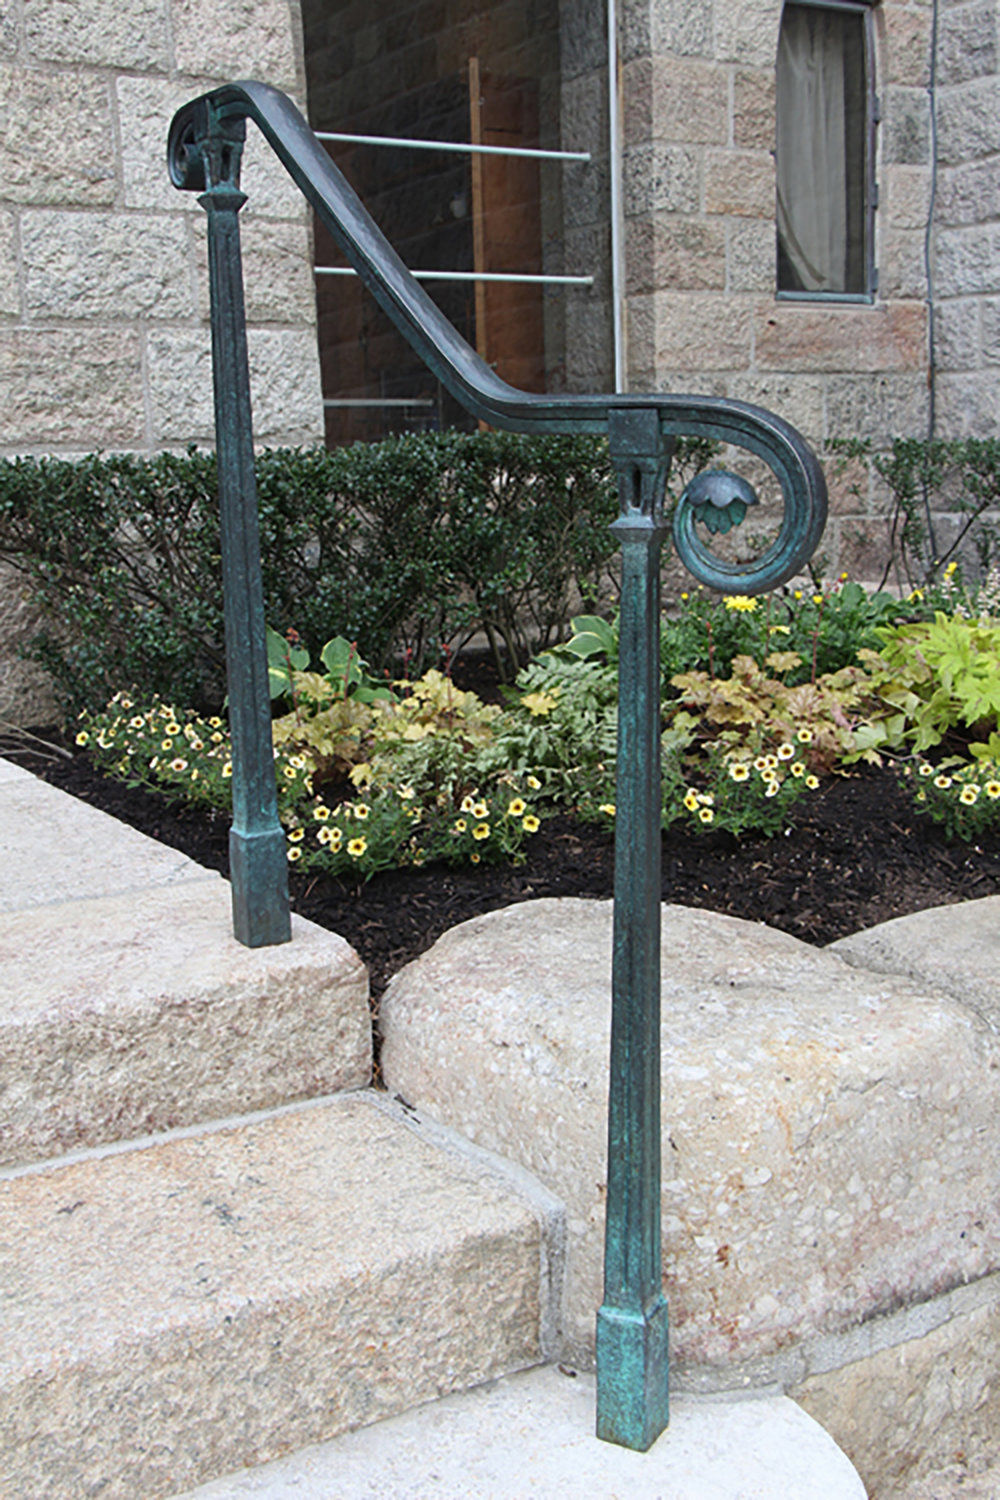 Figure 19: One of the new railings installed on Glencairn's front steps.